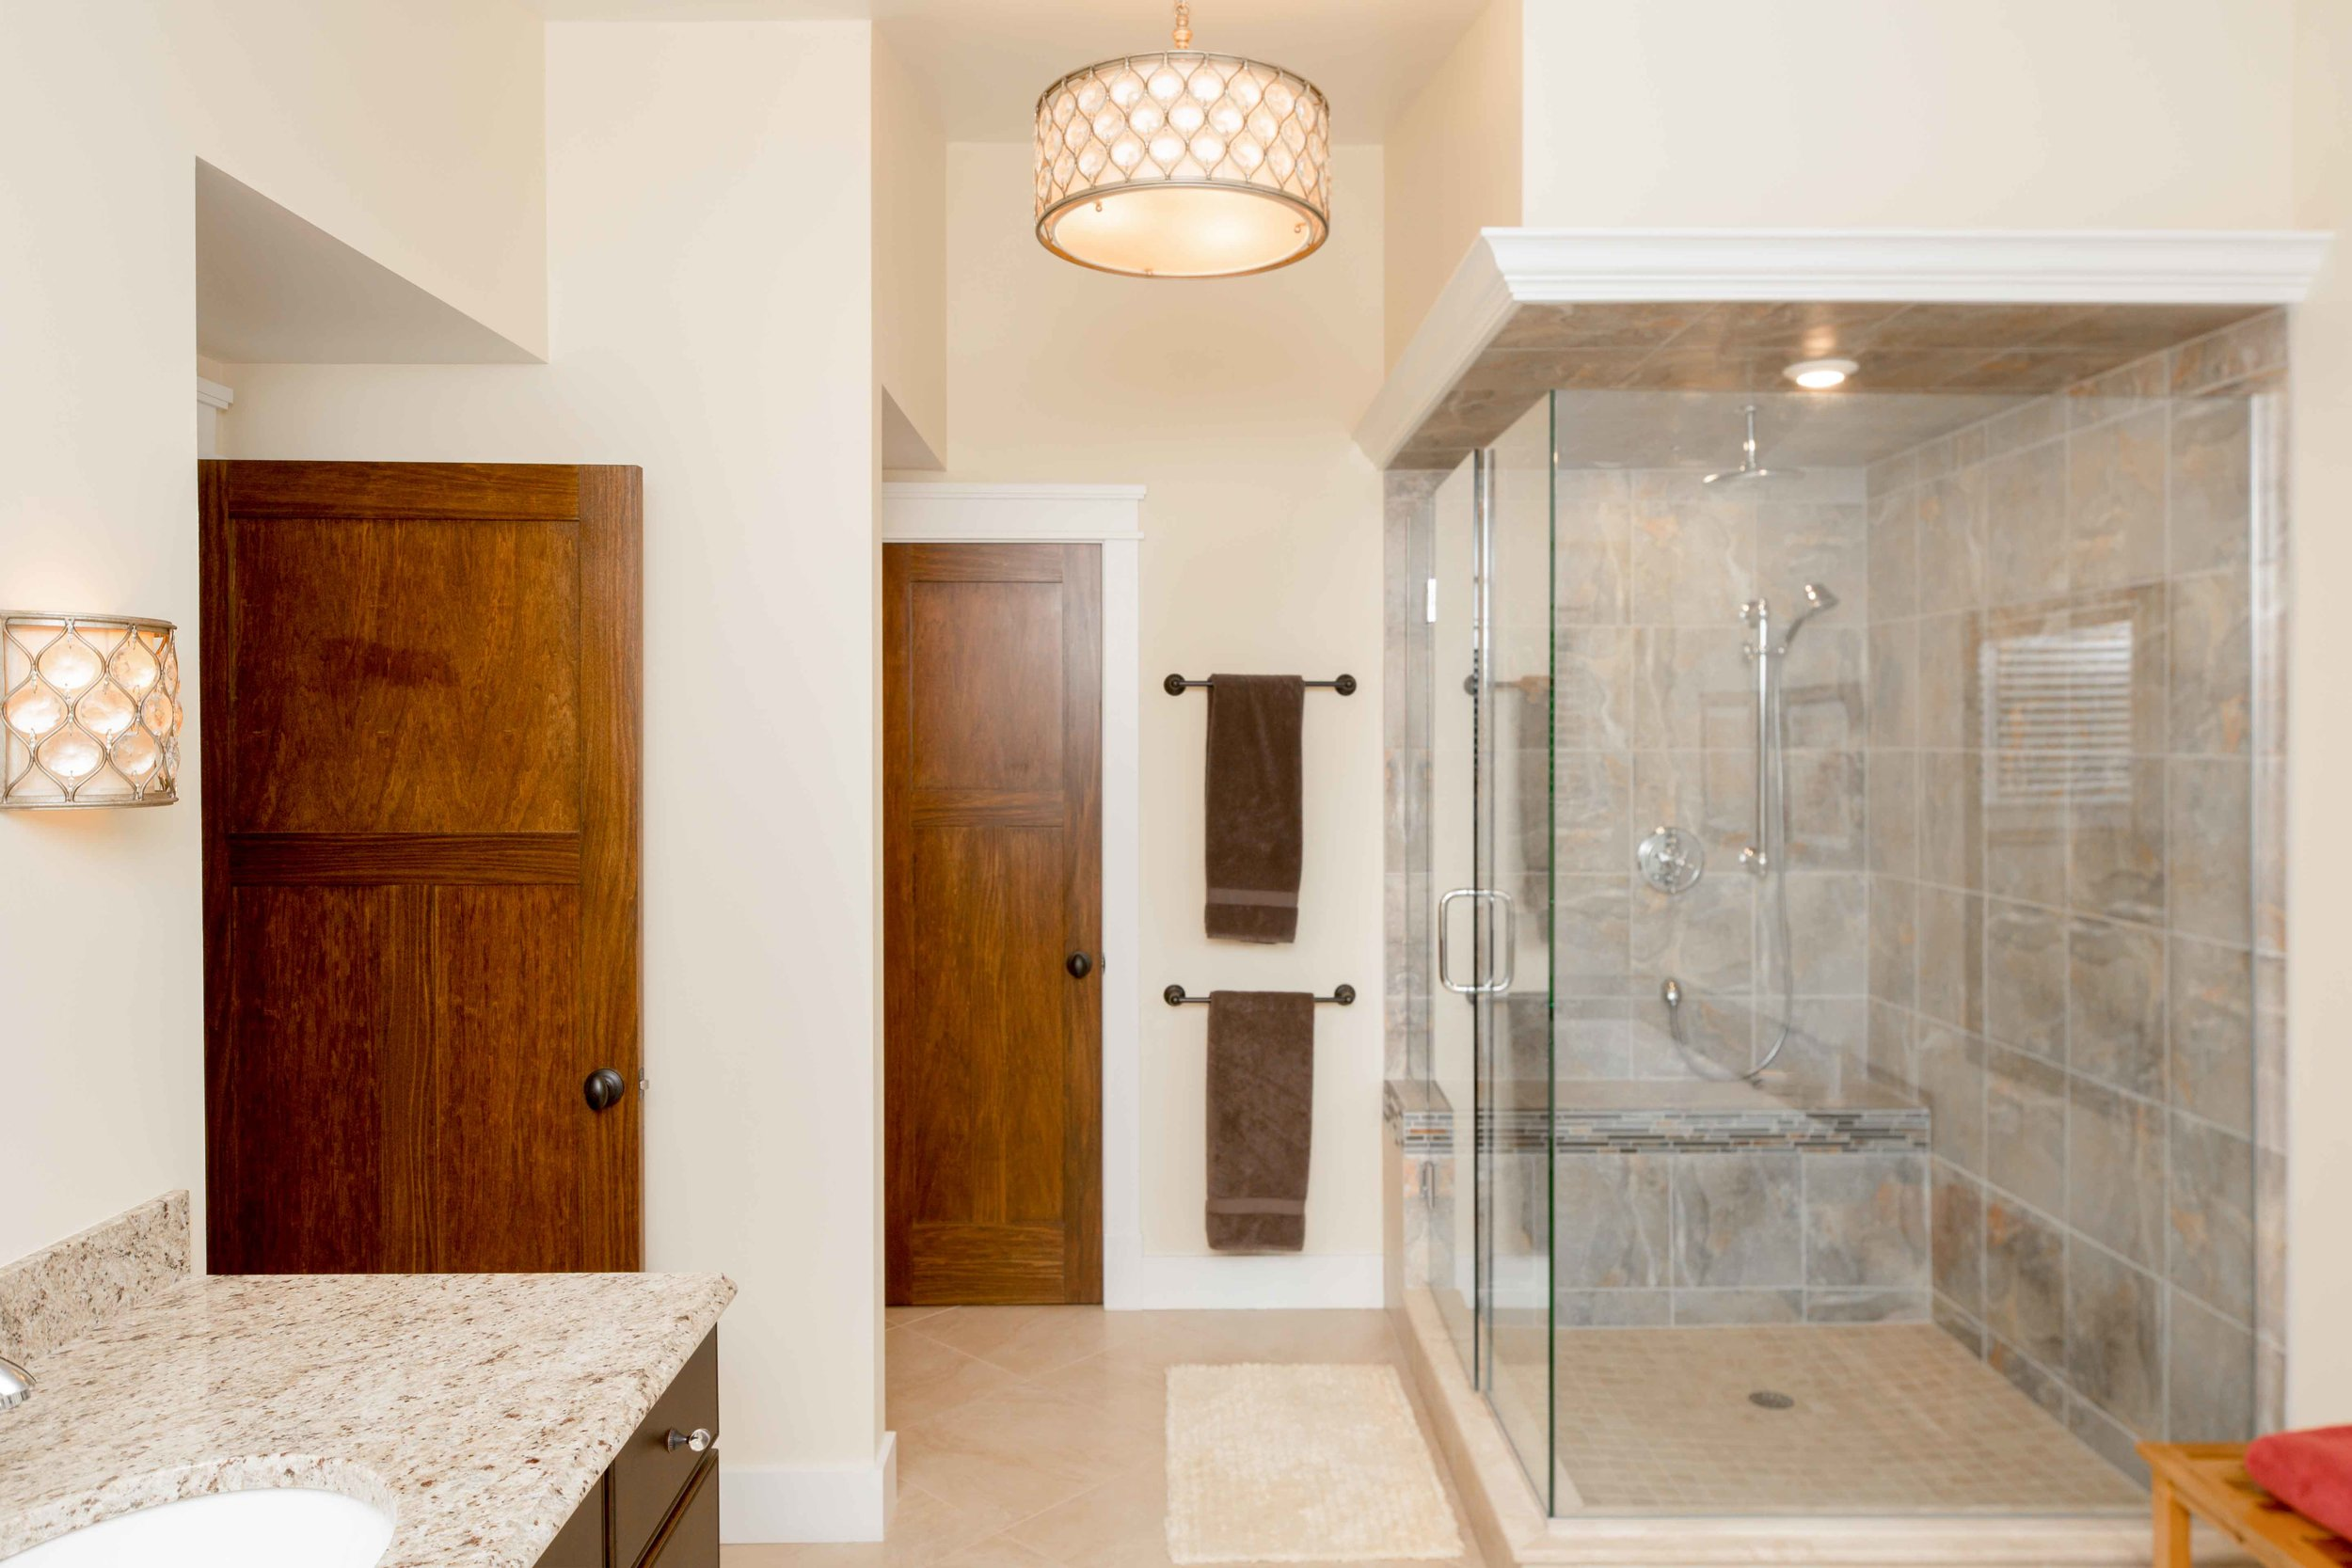 Burt Lake custom home and remodeling portfolio by builders and contractors, Birchwood Construction Company.